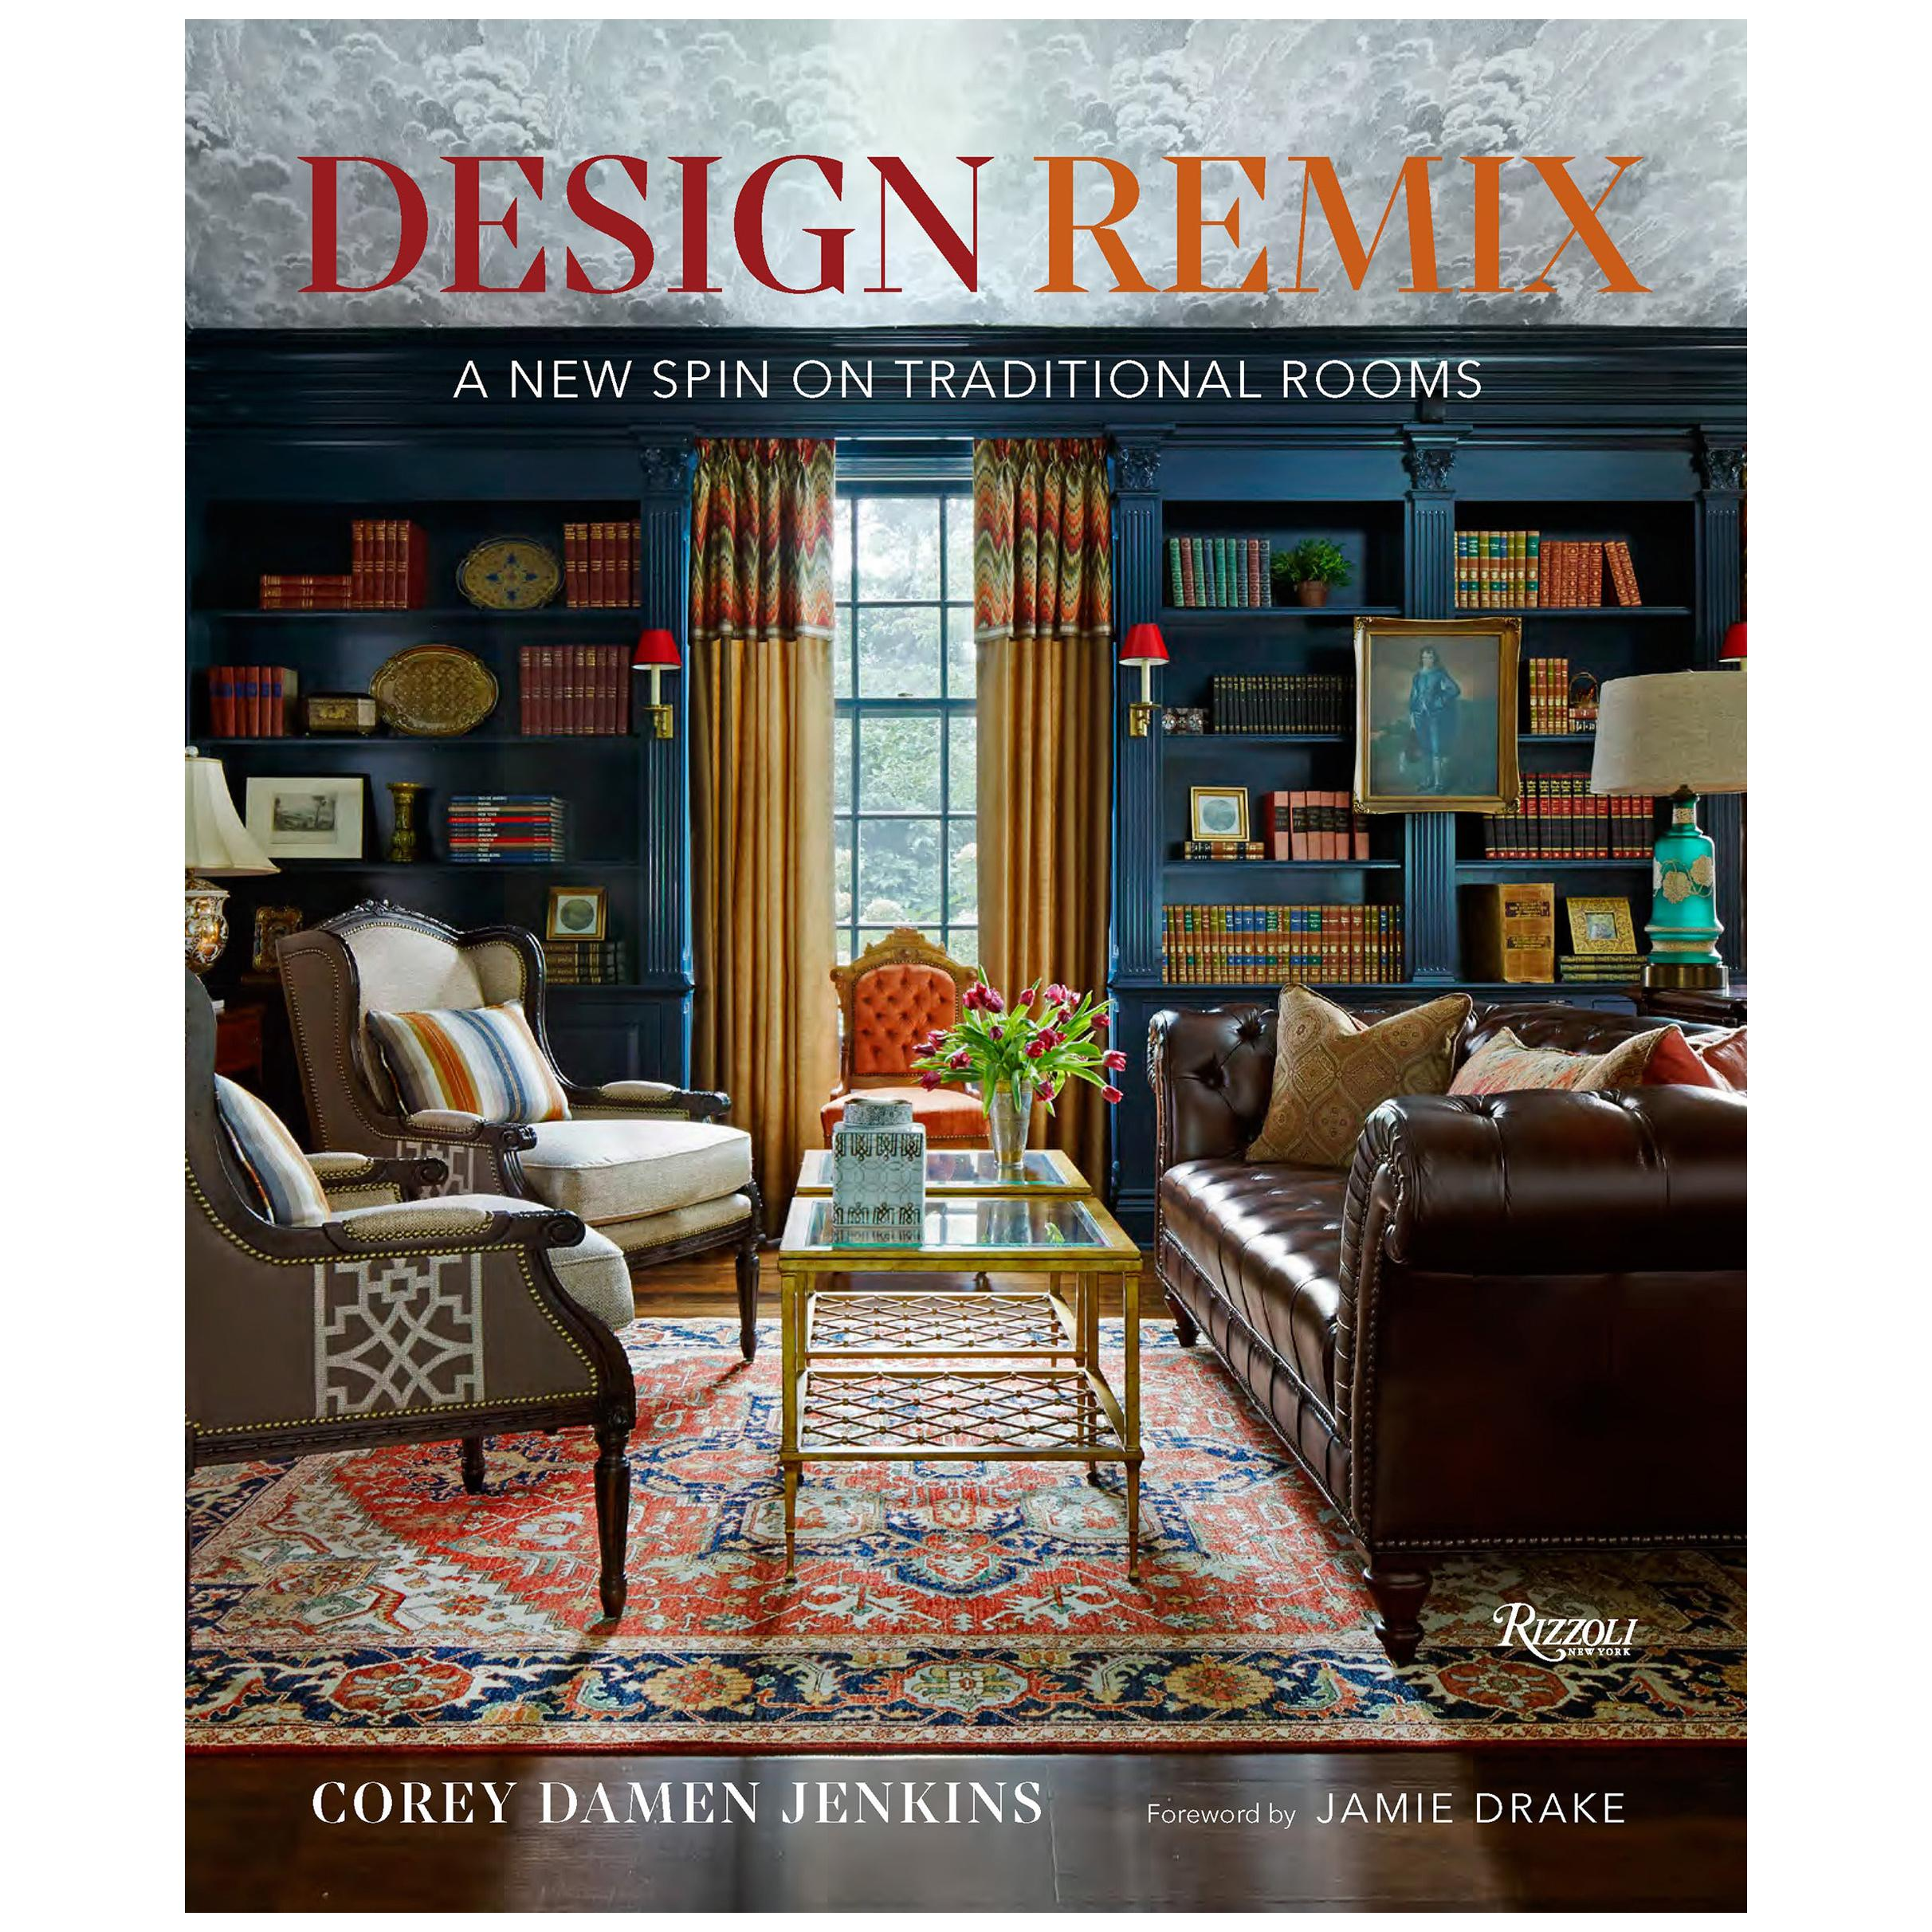 Design Remix A New Spin on Traditional Rooms